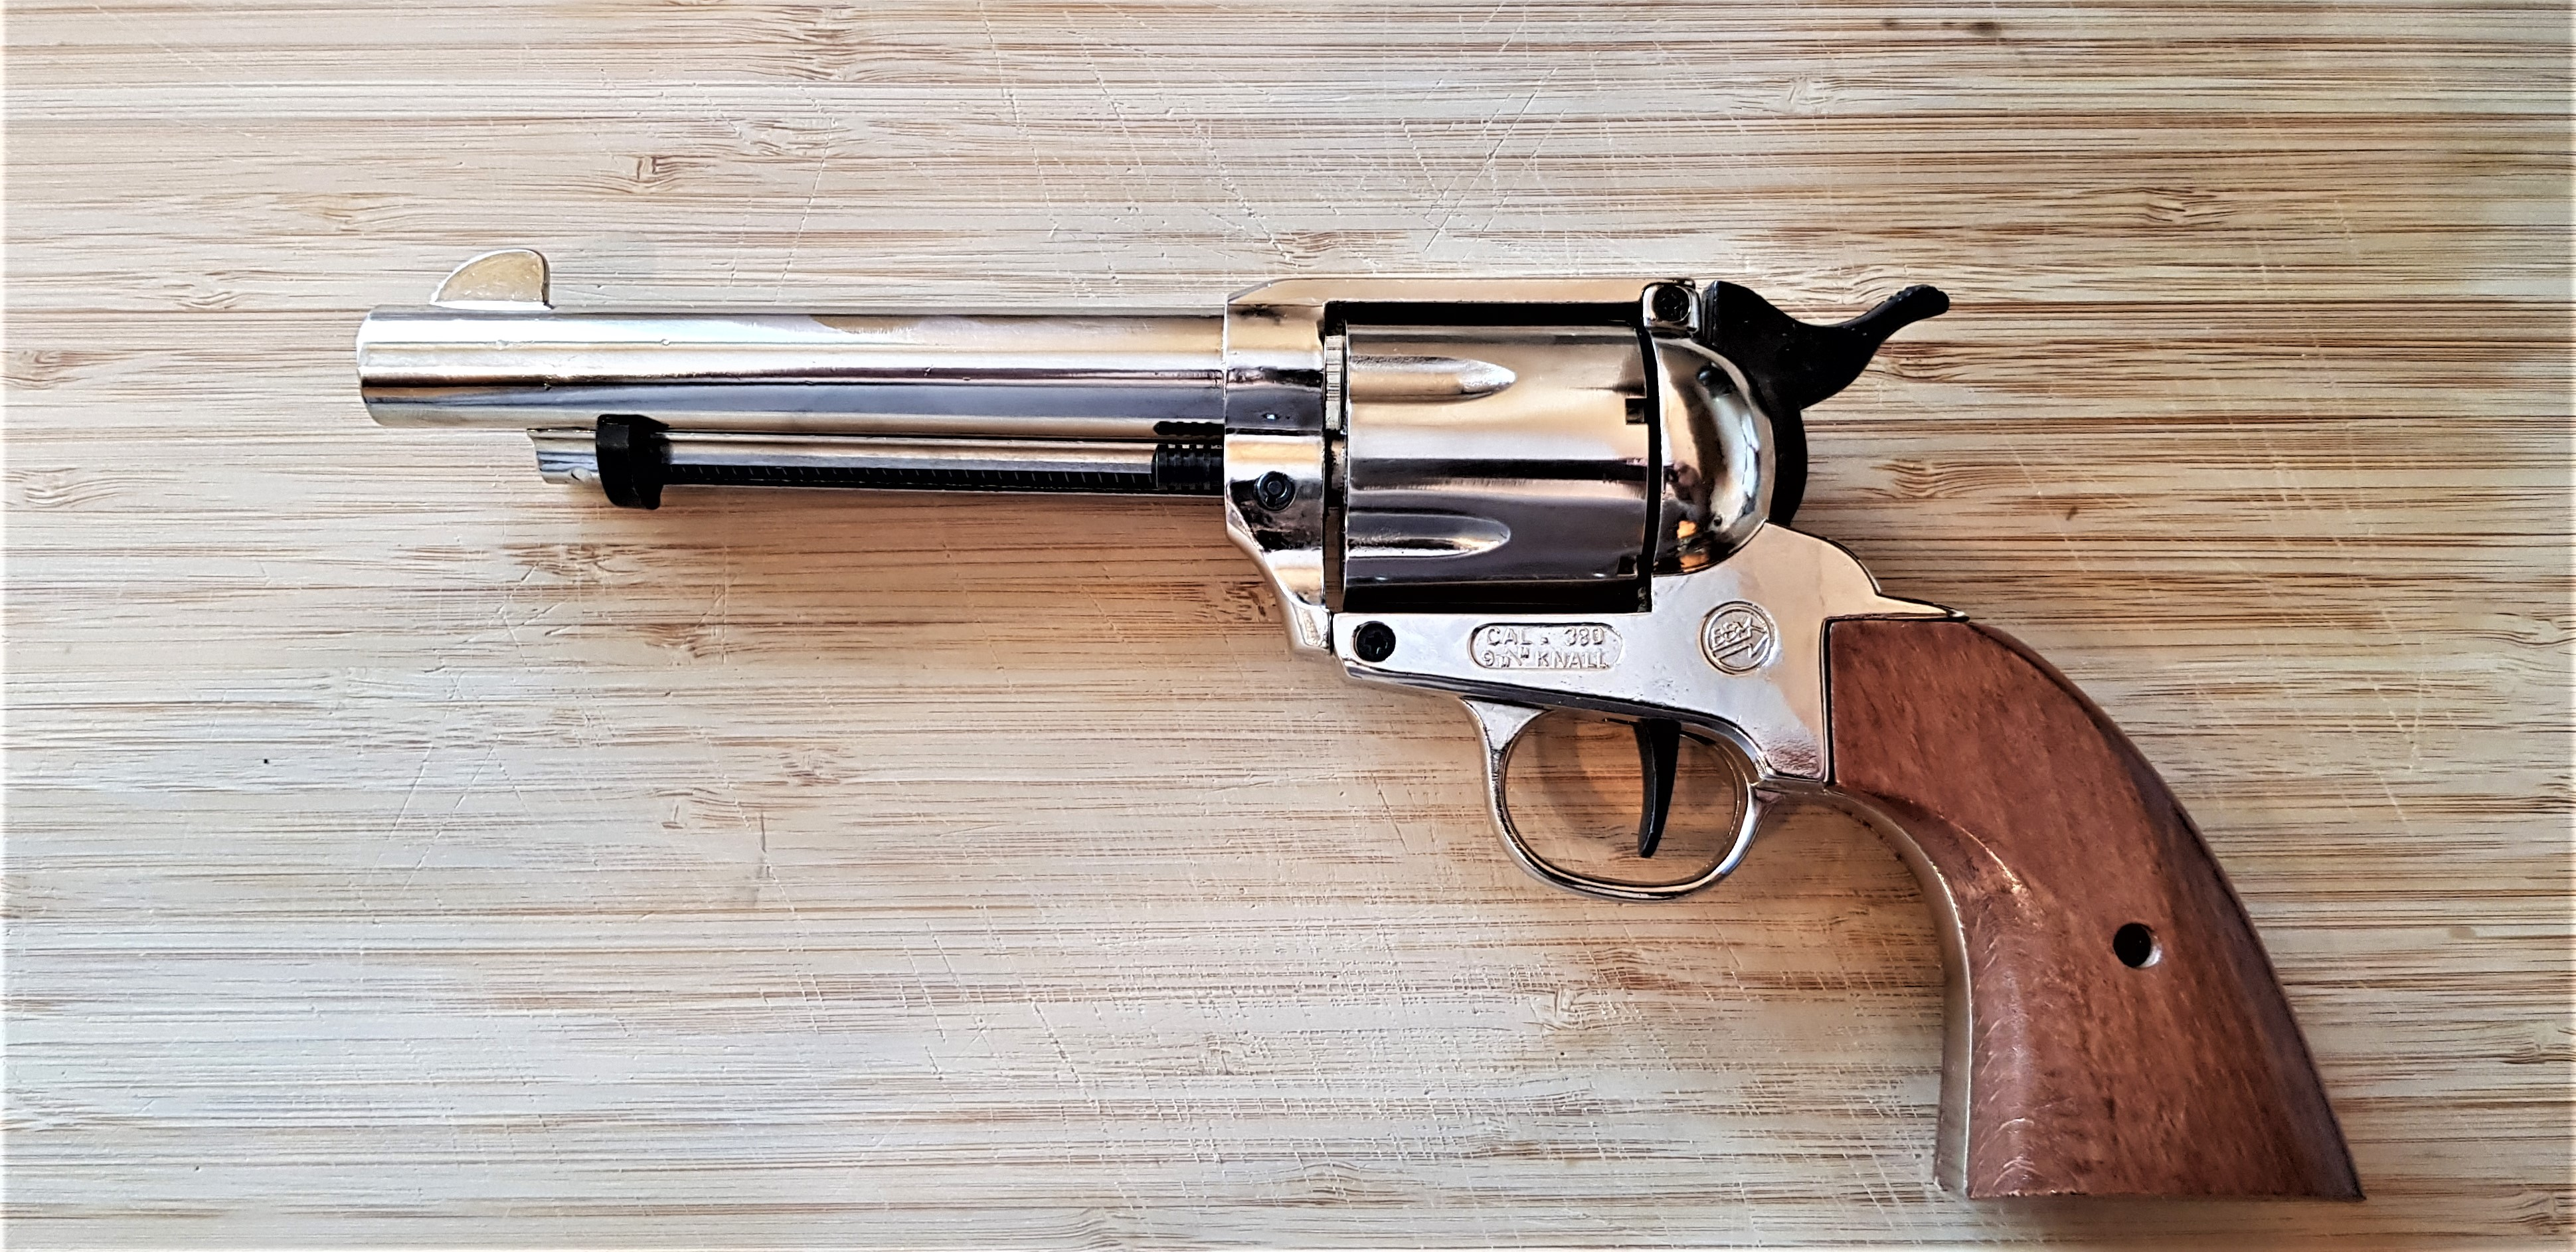 Colt Peacemaker Revolver -Blank Fire